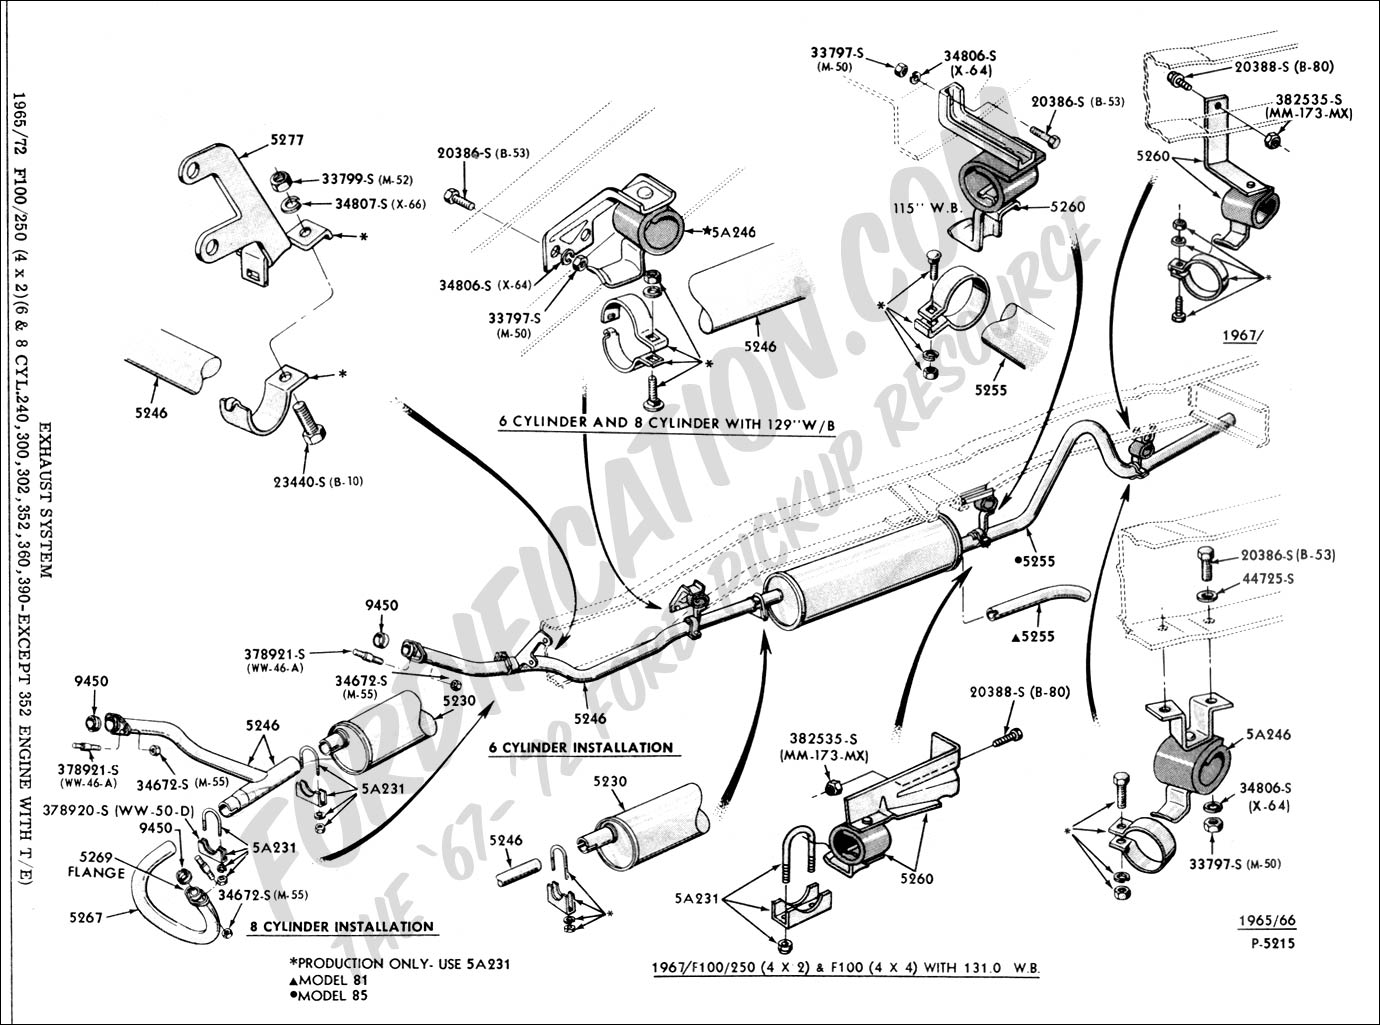 1998 Civic Engine Bay Diagram Data Wiring Diagrams 1990 F350 Air Conditioning Honda Starter